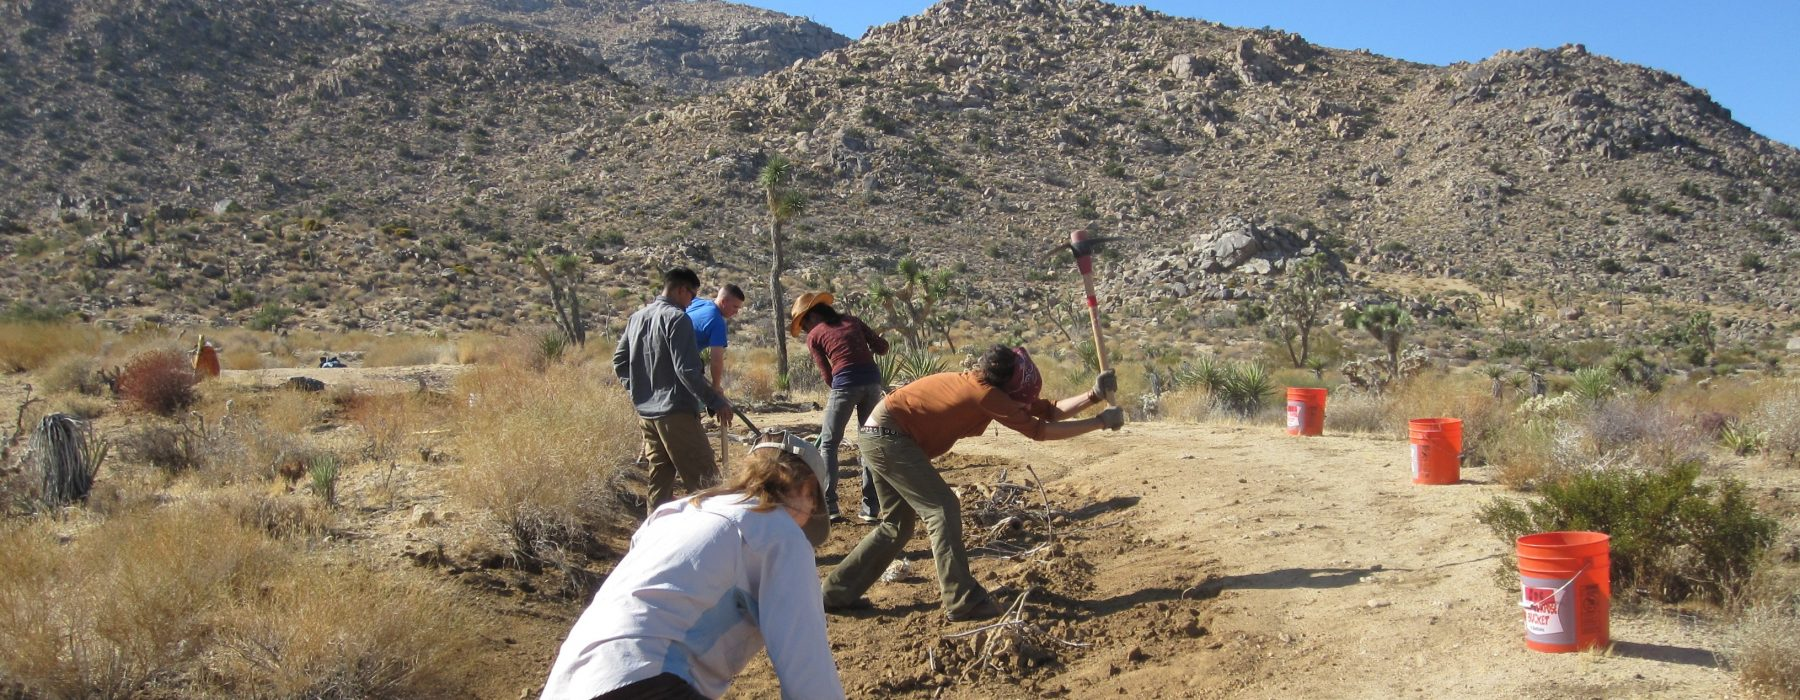 photo of stewardship volunteers working hard in the desert